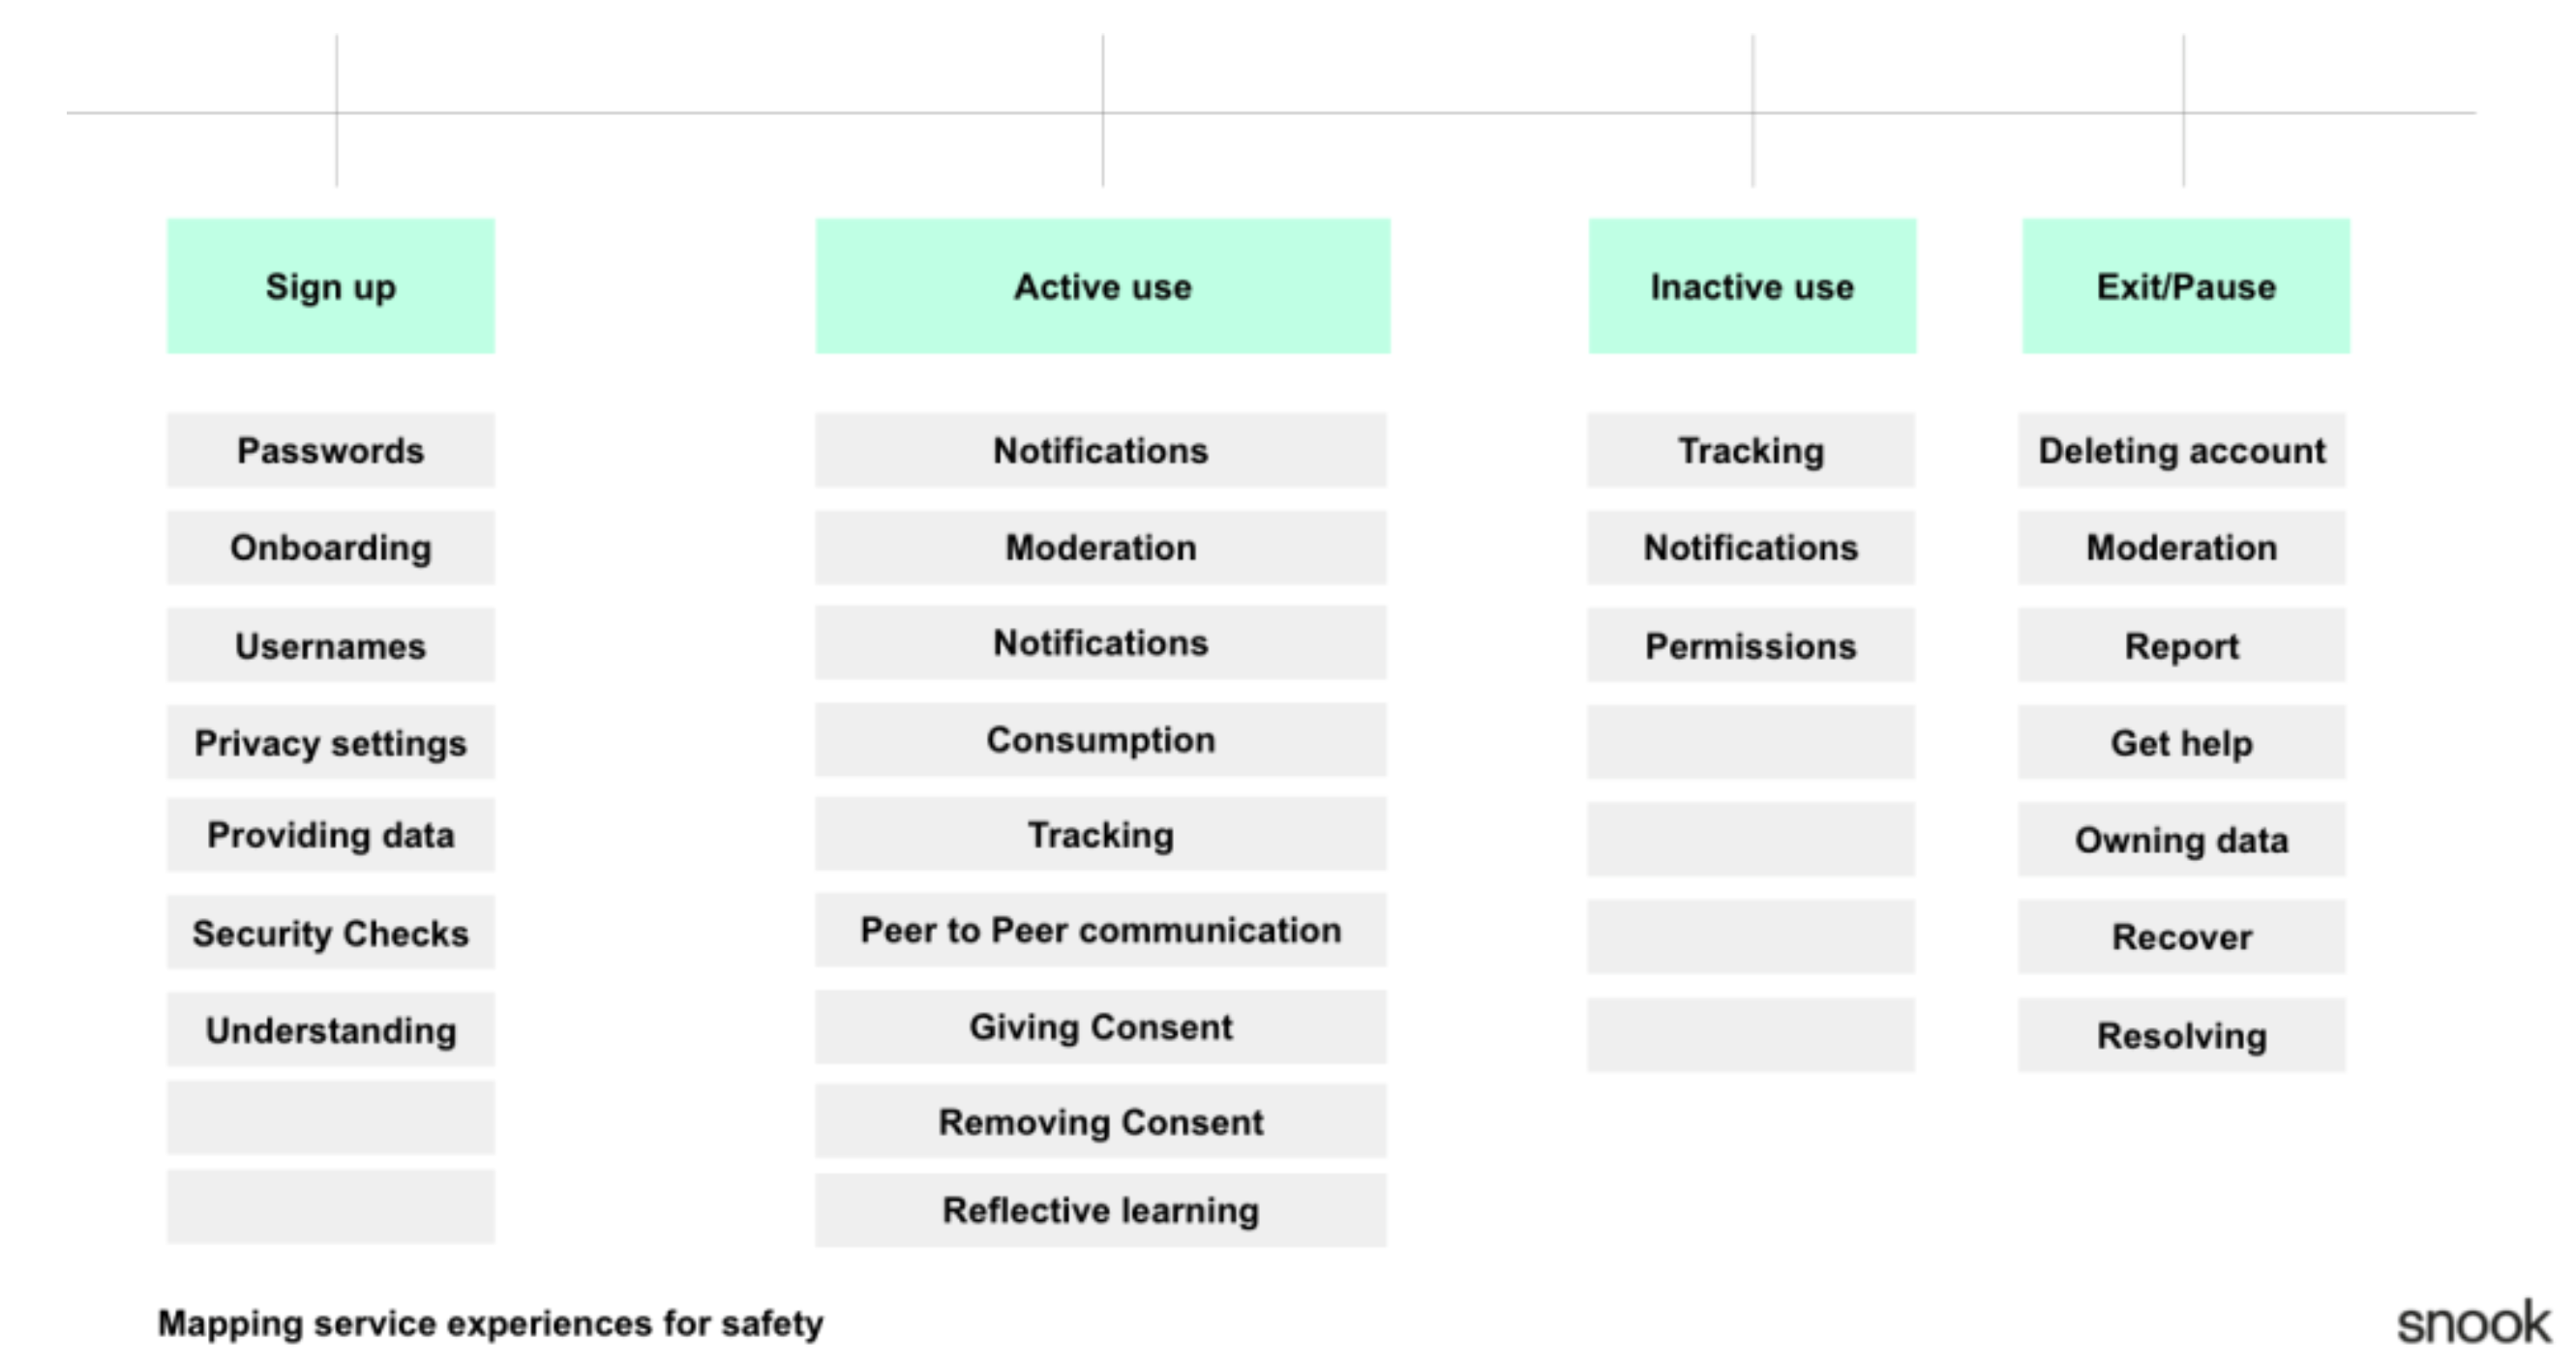 An image showing the stages of a user journey (sign-up, active use, inactive use and exit/pause) with the interactions that involve safety mapped to them